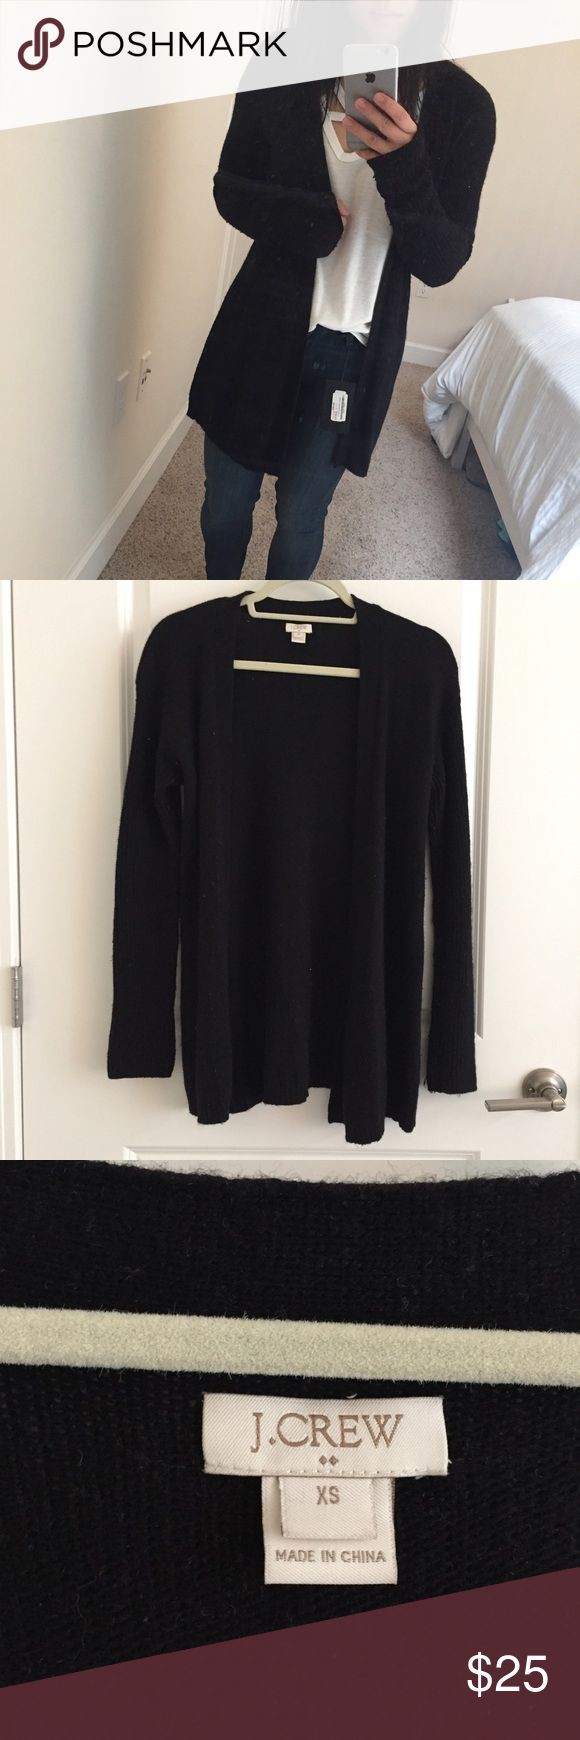 "J.Crew Open Cardigan in Black Well loved ""yoga"" cardigan by J.Crew in Black. Super easy to throw on when you are on the go or when you are feeling a Netflix and chill kind of day at home. J. Crew Jackets & Coats"